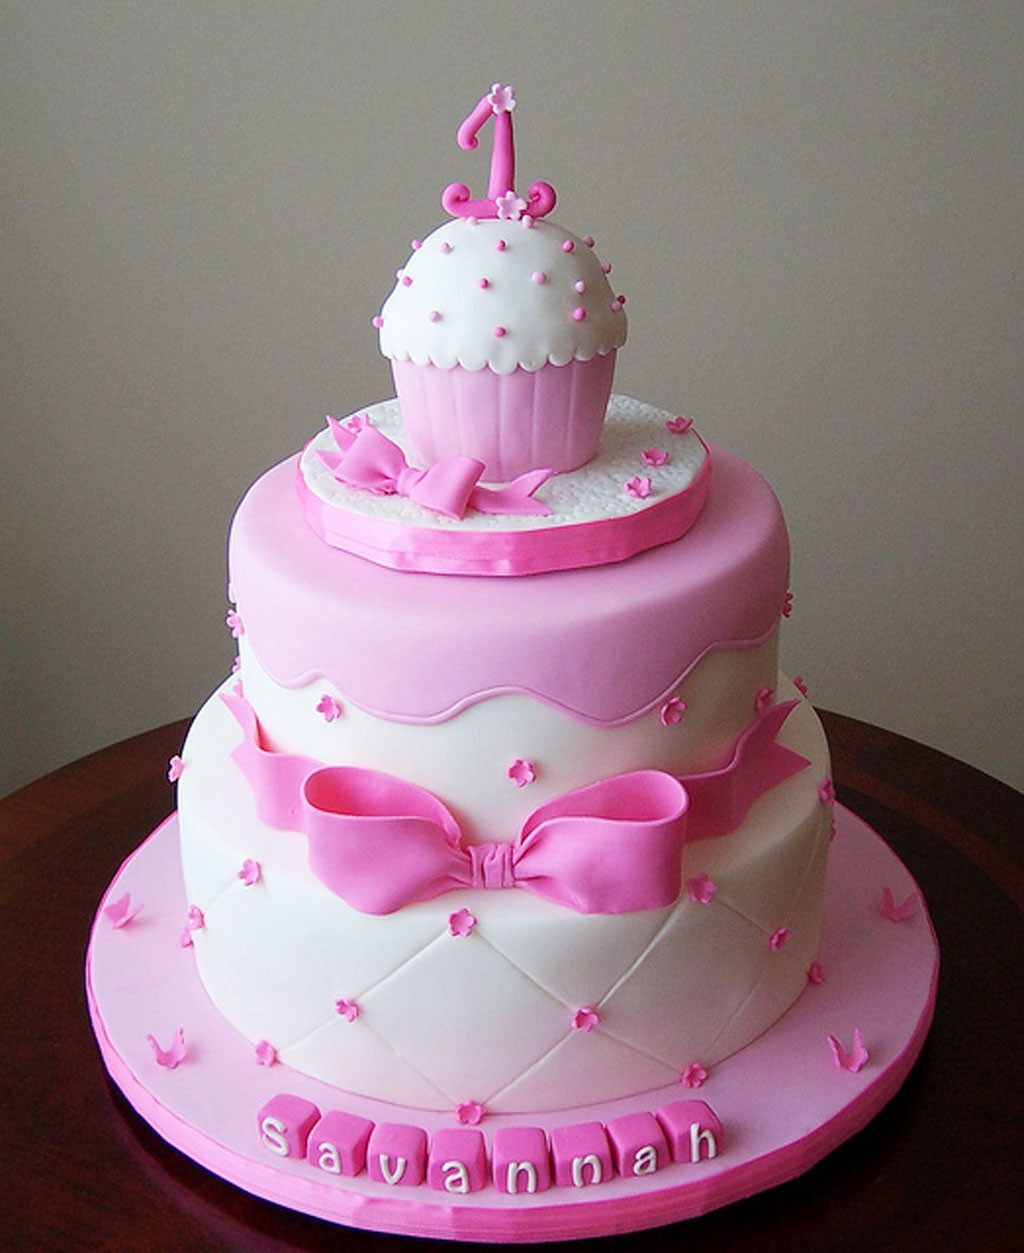 1St Birthday Cake  Birthday cakes for girls images pictures wallpapers and